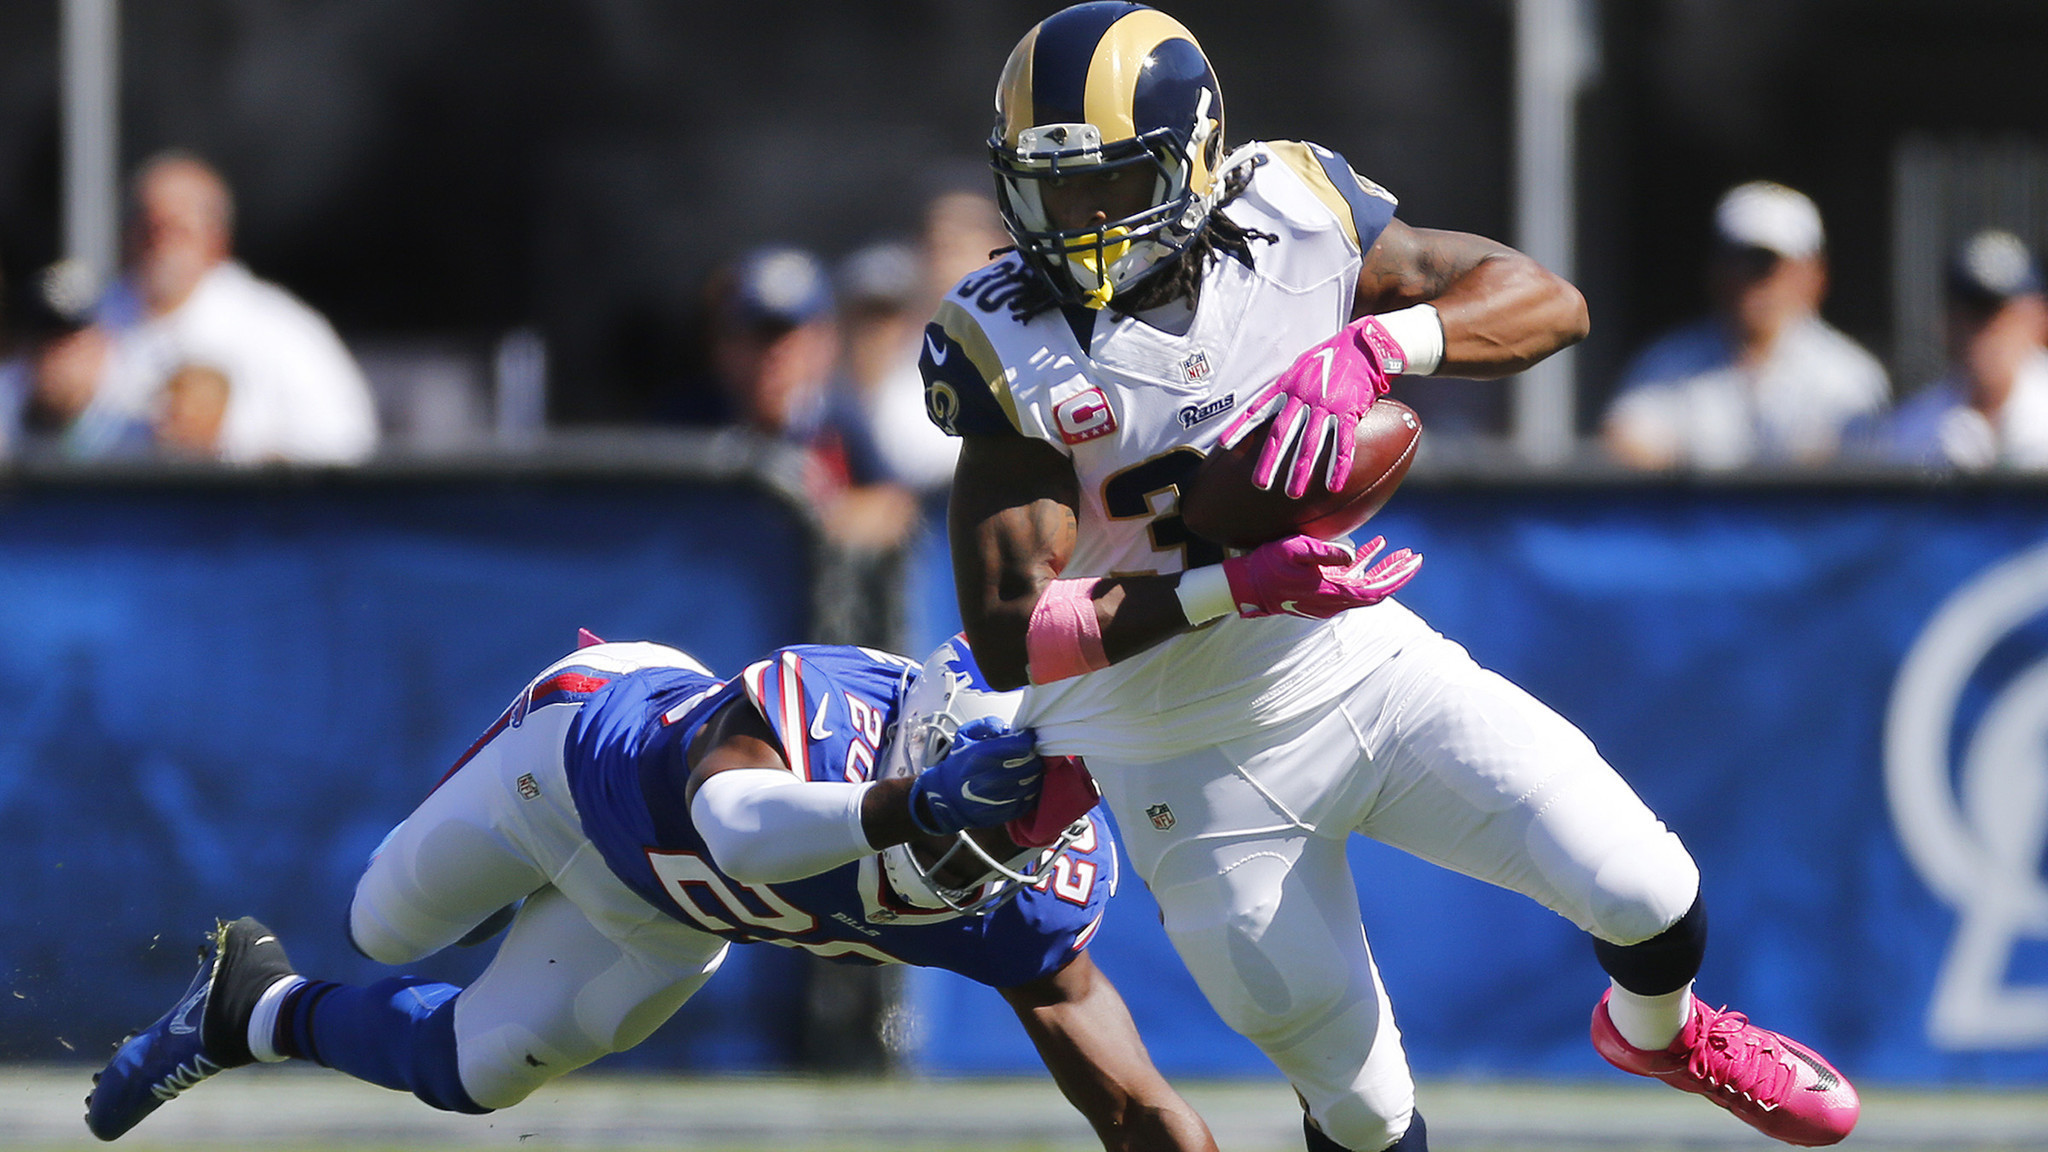 Rams Todd Gurley is staying patient but has little to show for it